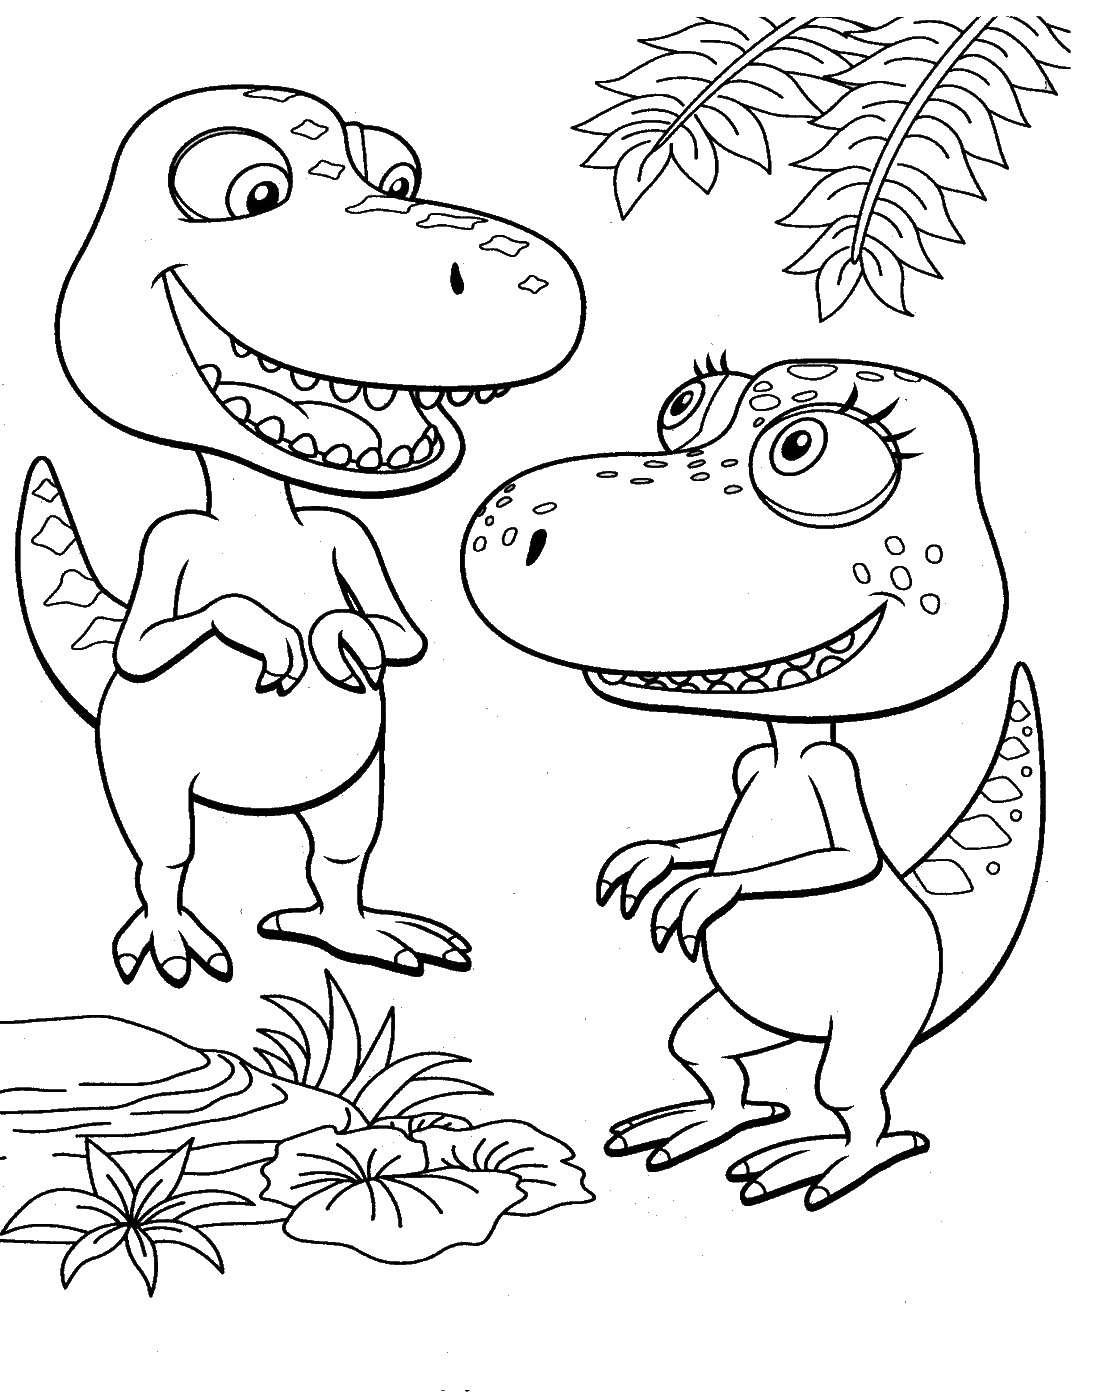 dinosaur coloring pages - dinosaur train coloring pages dinosaurs pictures and facts